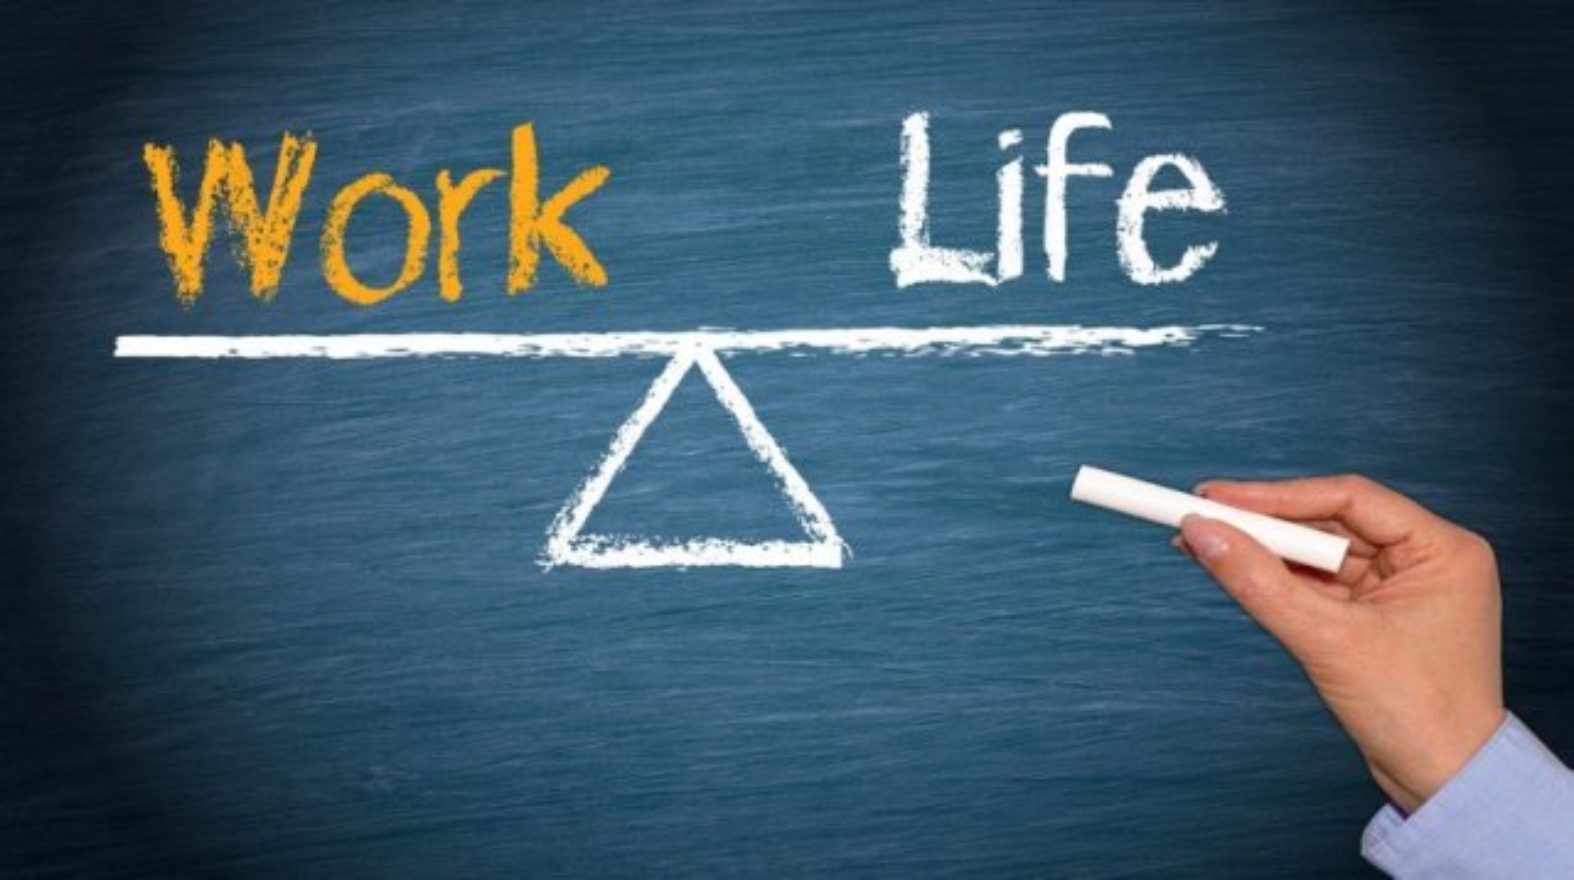 work life balance 2 1work-life balance, one of the most important factors our research has confirmed the rising importance of enabling better work-life balance for employees and promoting these initiatives and policies to attract talent.